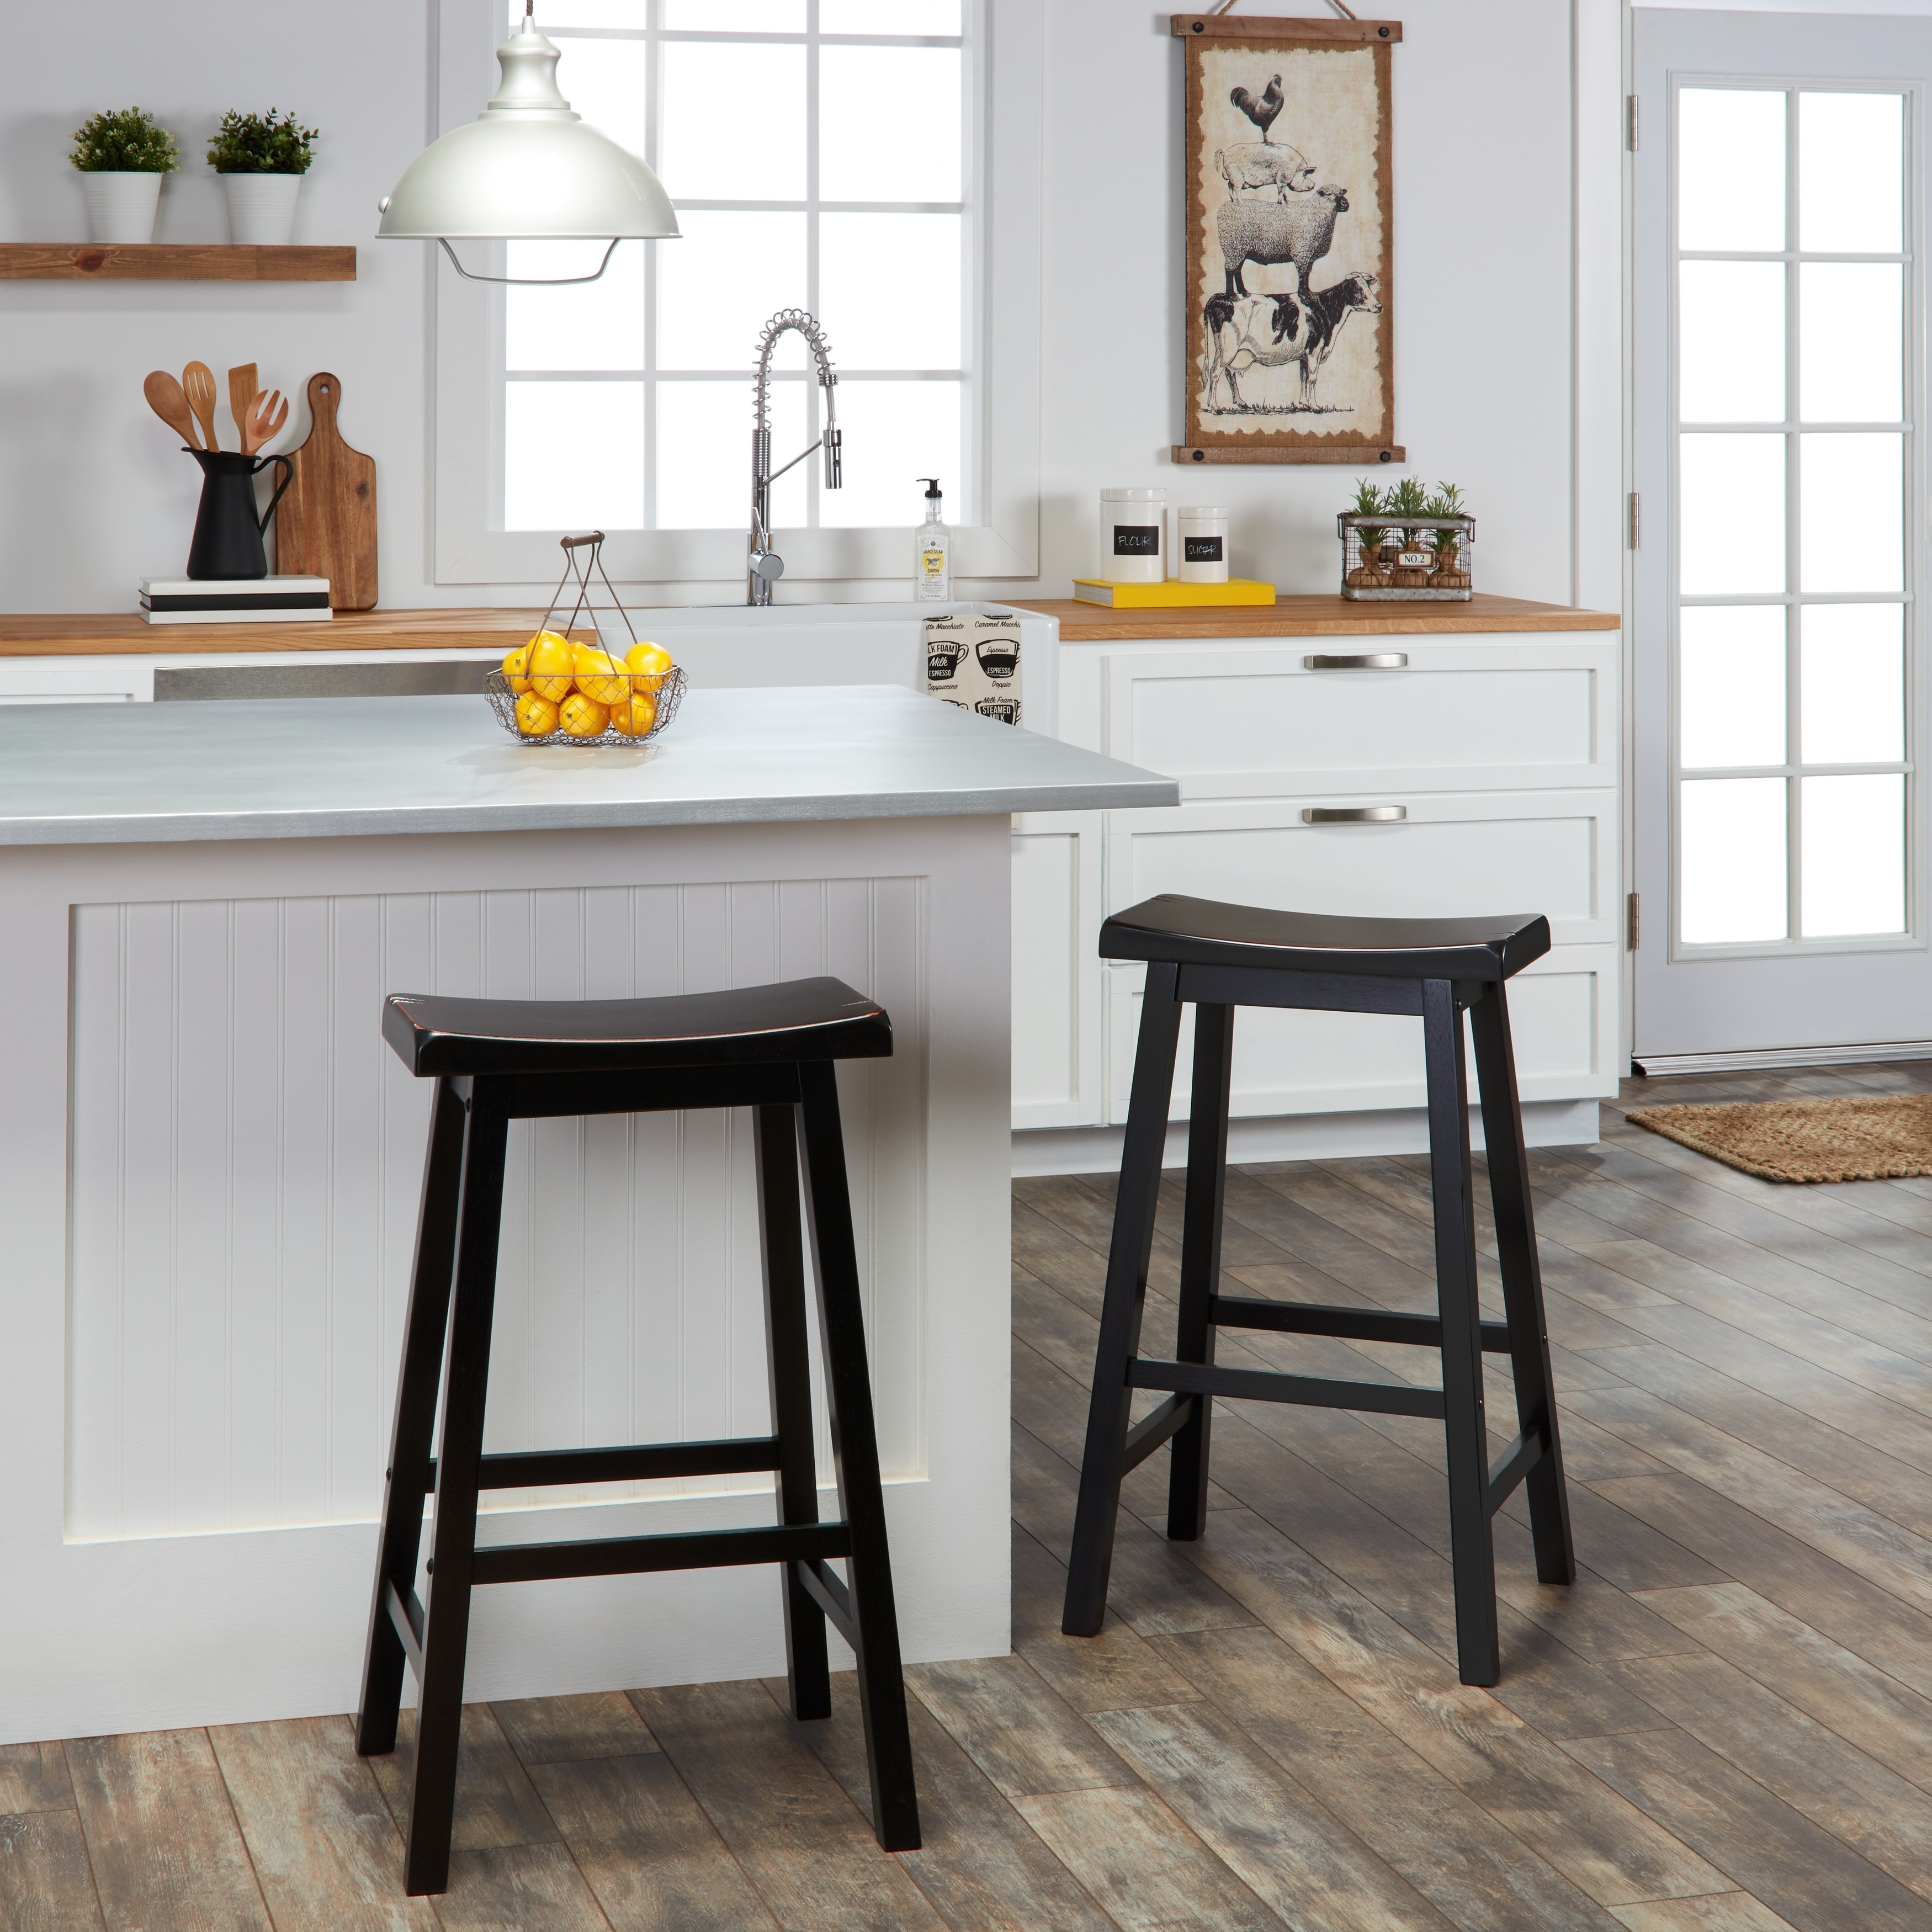 Salvador Saddle 29 Inch Counter Height Backless Stools Set Of 2 By